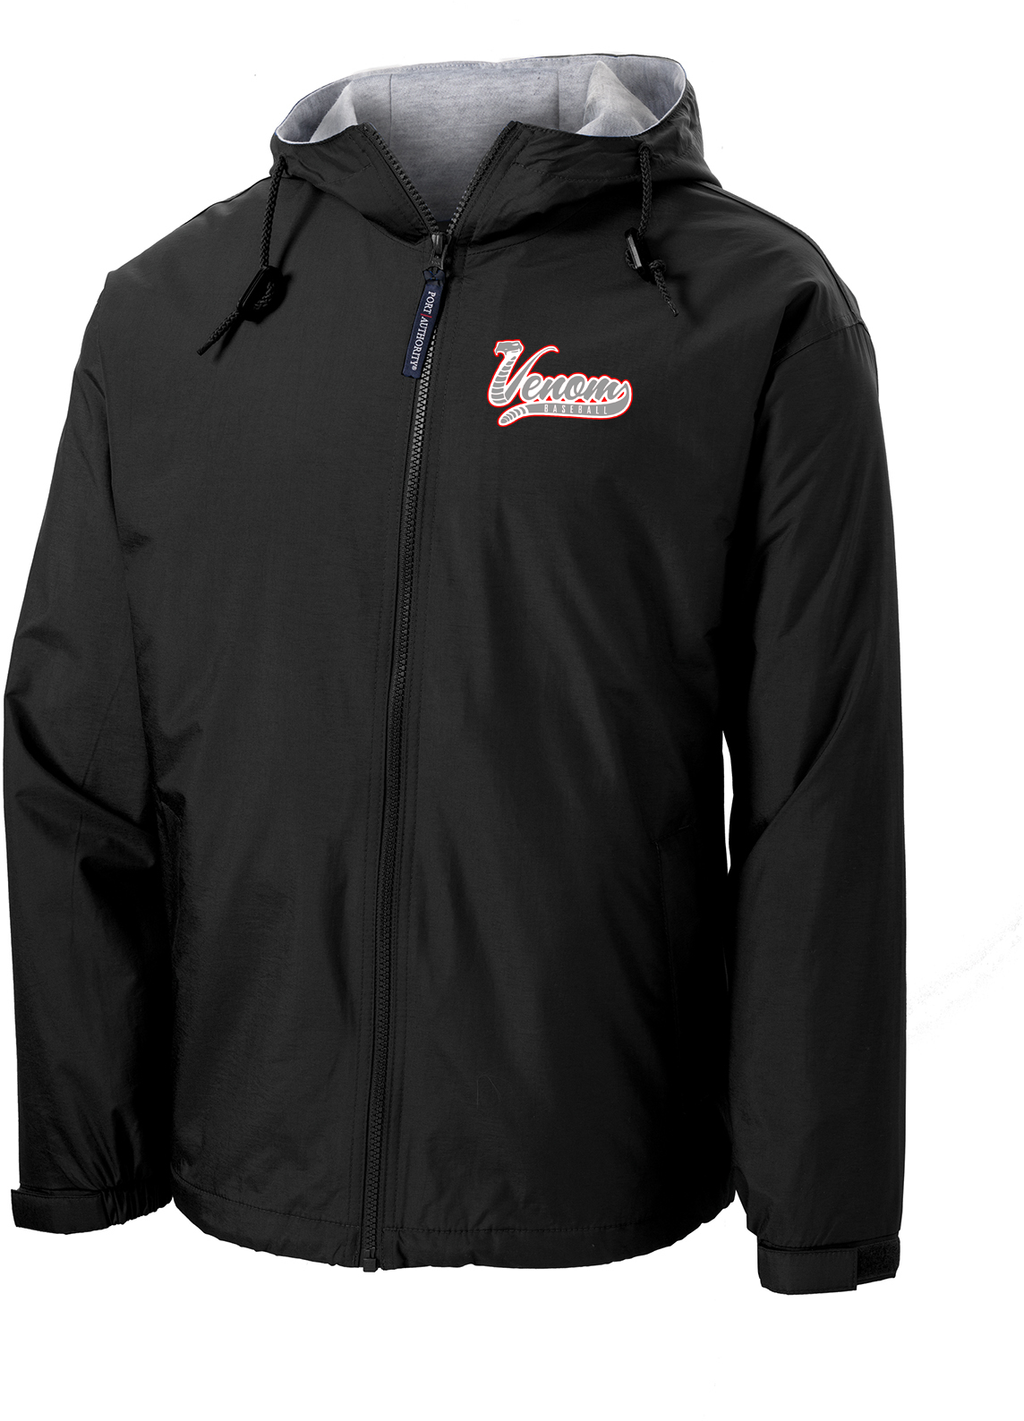 Valley Venom Baseball Hooded Jacket